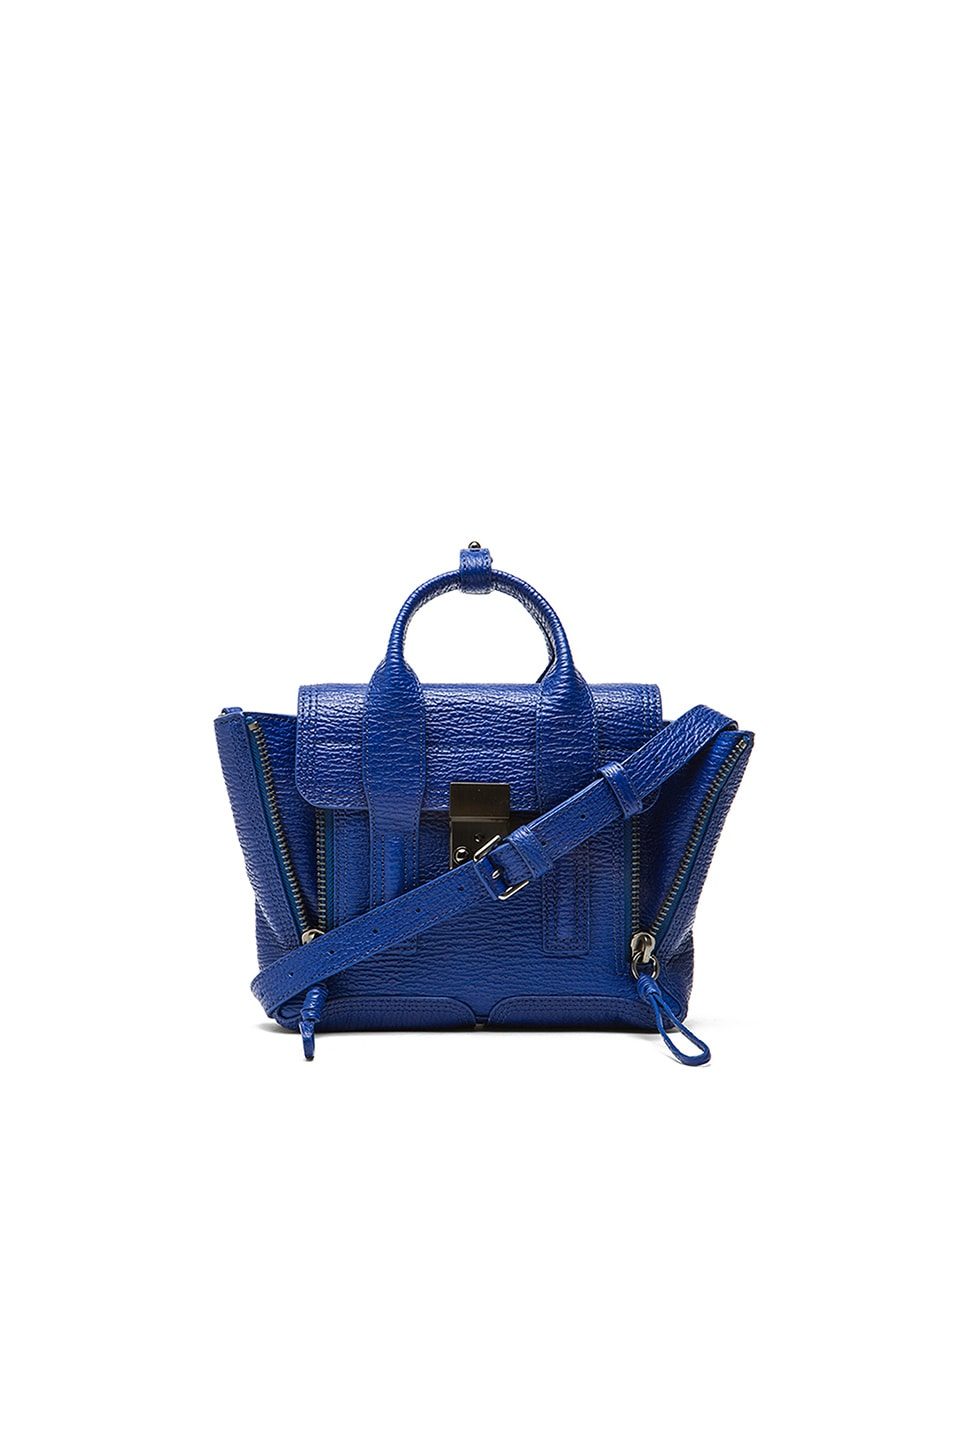 Image 1 of 3.1 phillip lim Mini Pashli Satchel in Cobalt